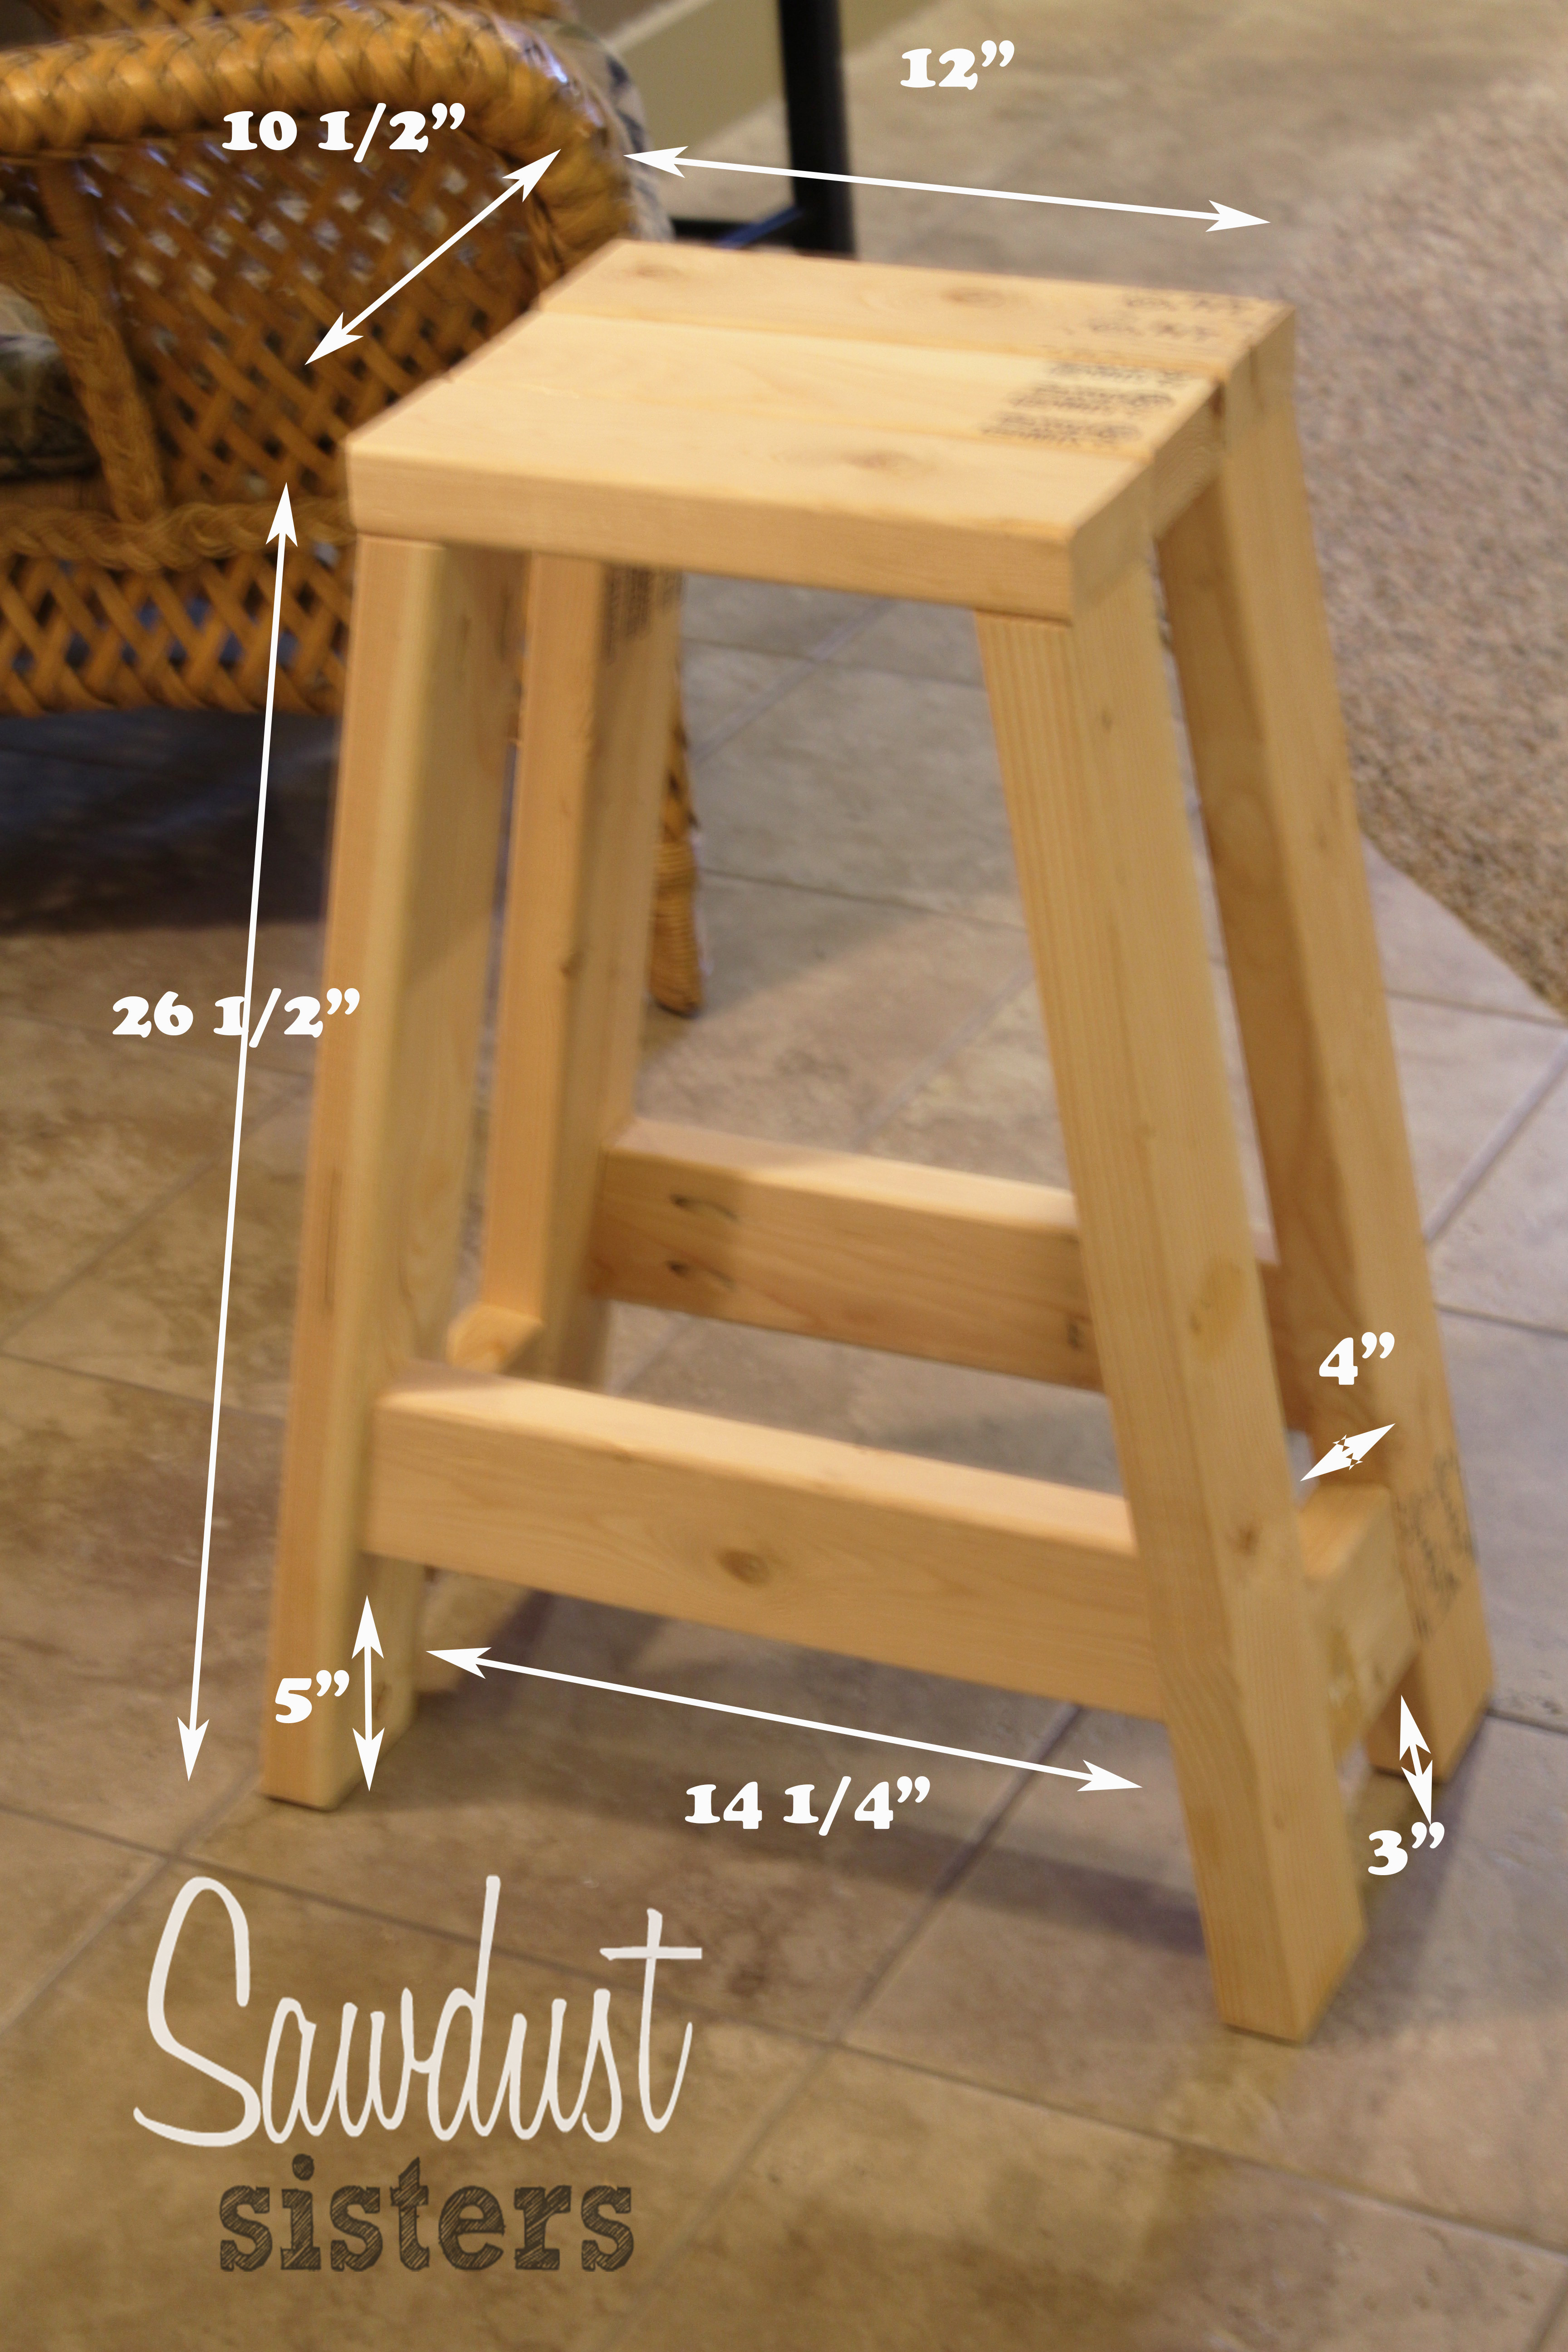 DIY Bar Stools Plans  Build a Barstool Using ly 2x4s Sawdust Sisters